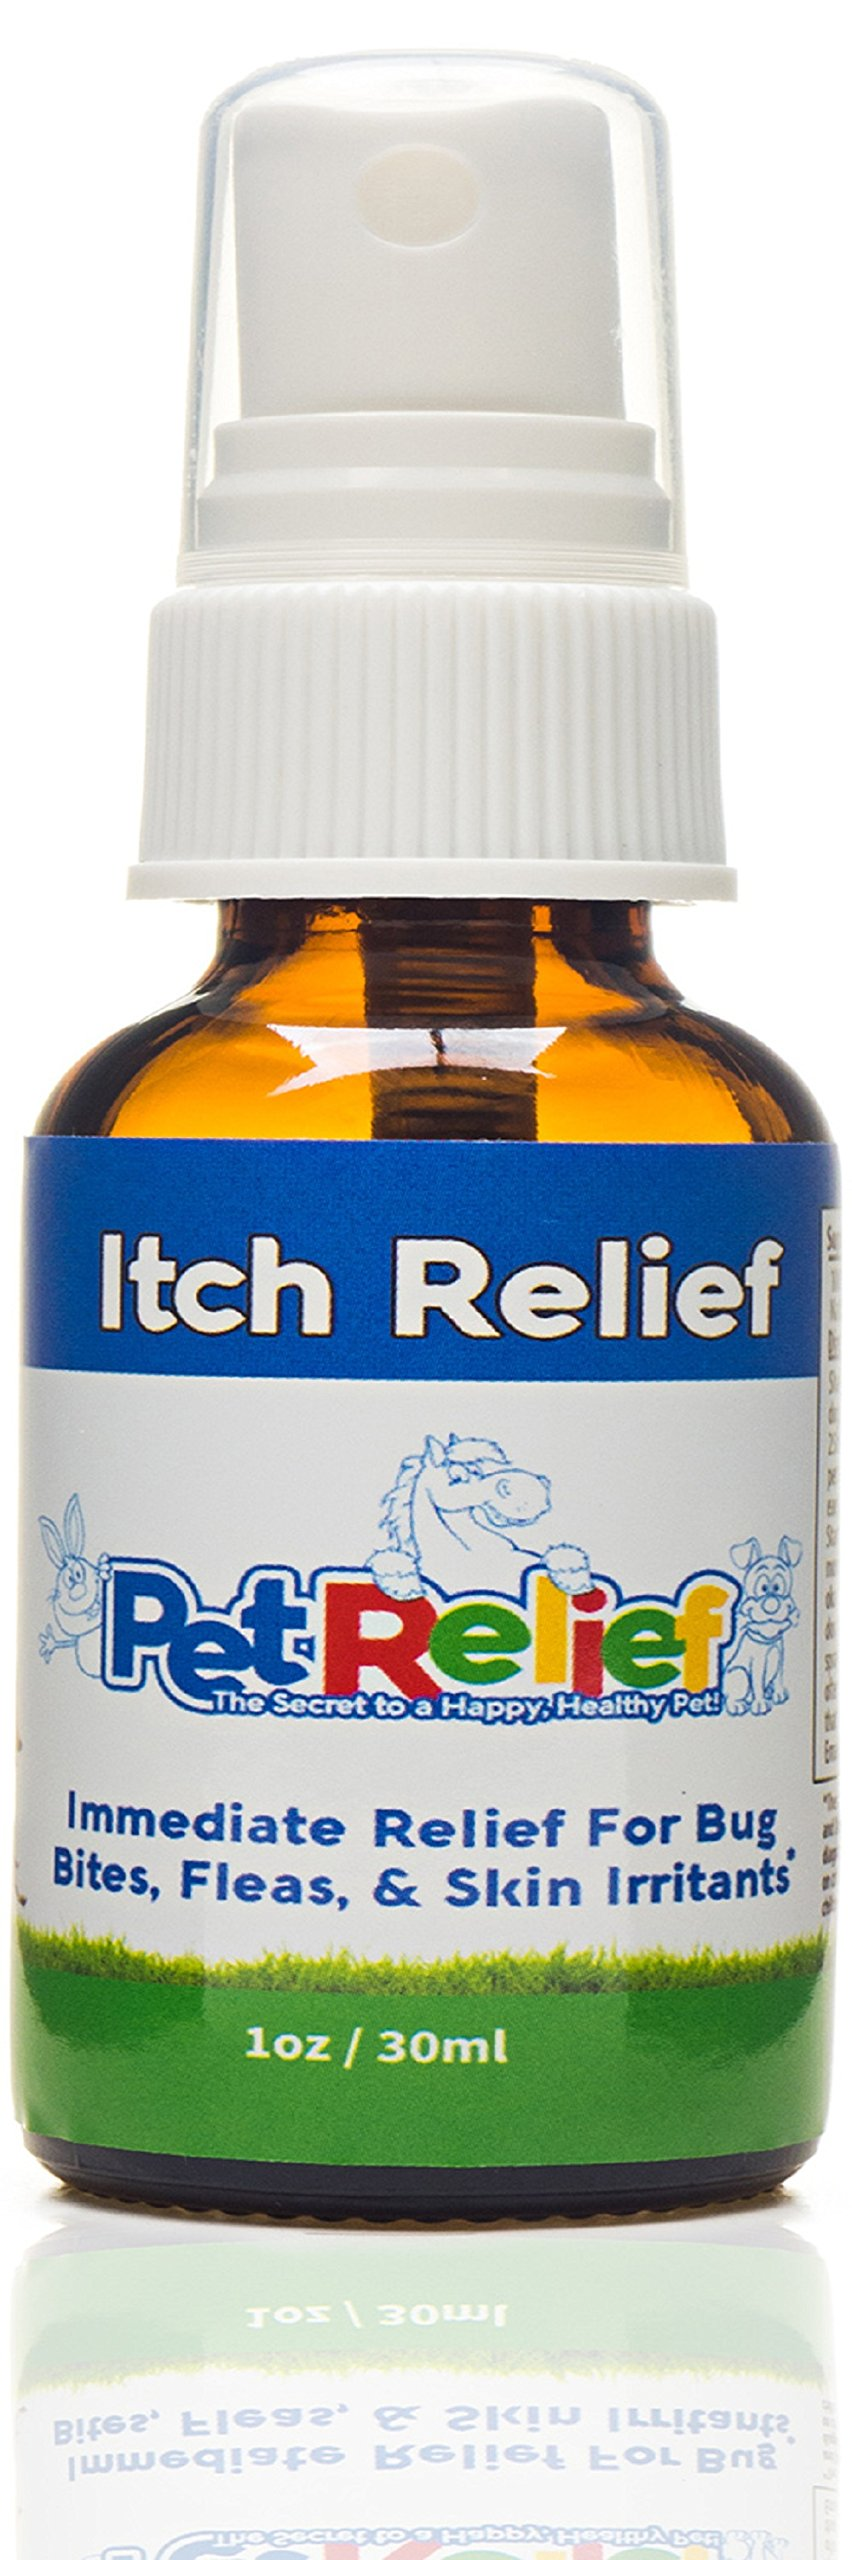 Pet Relief Anti Itch Spray, Natural Itching Treatment Relief from Ringworm Scratch, 1 oz., for Dogs